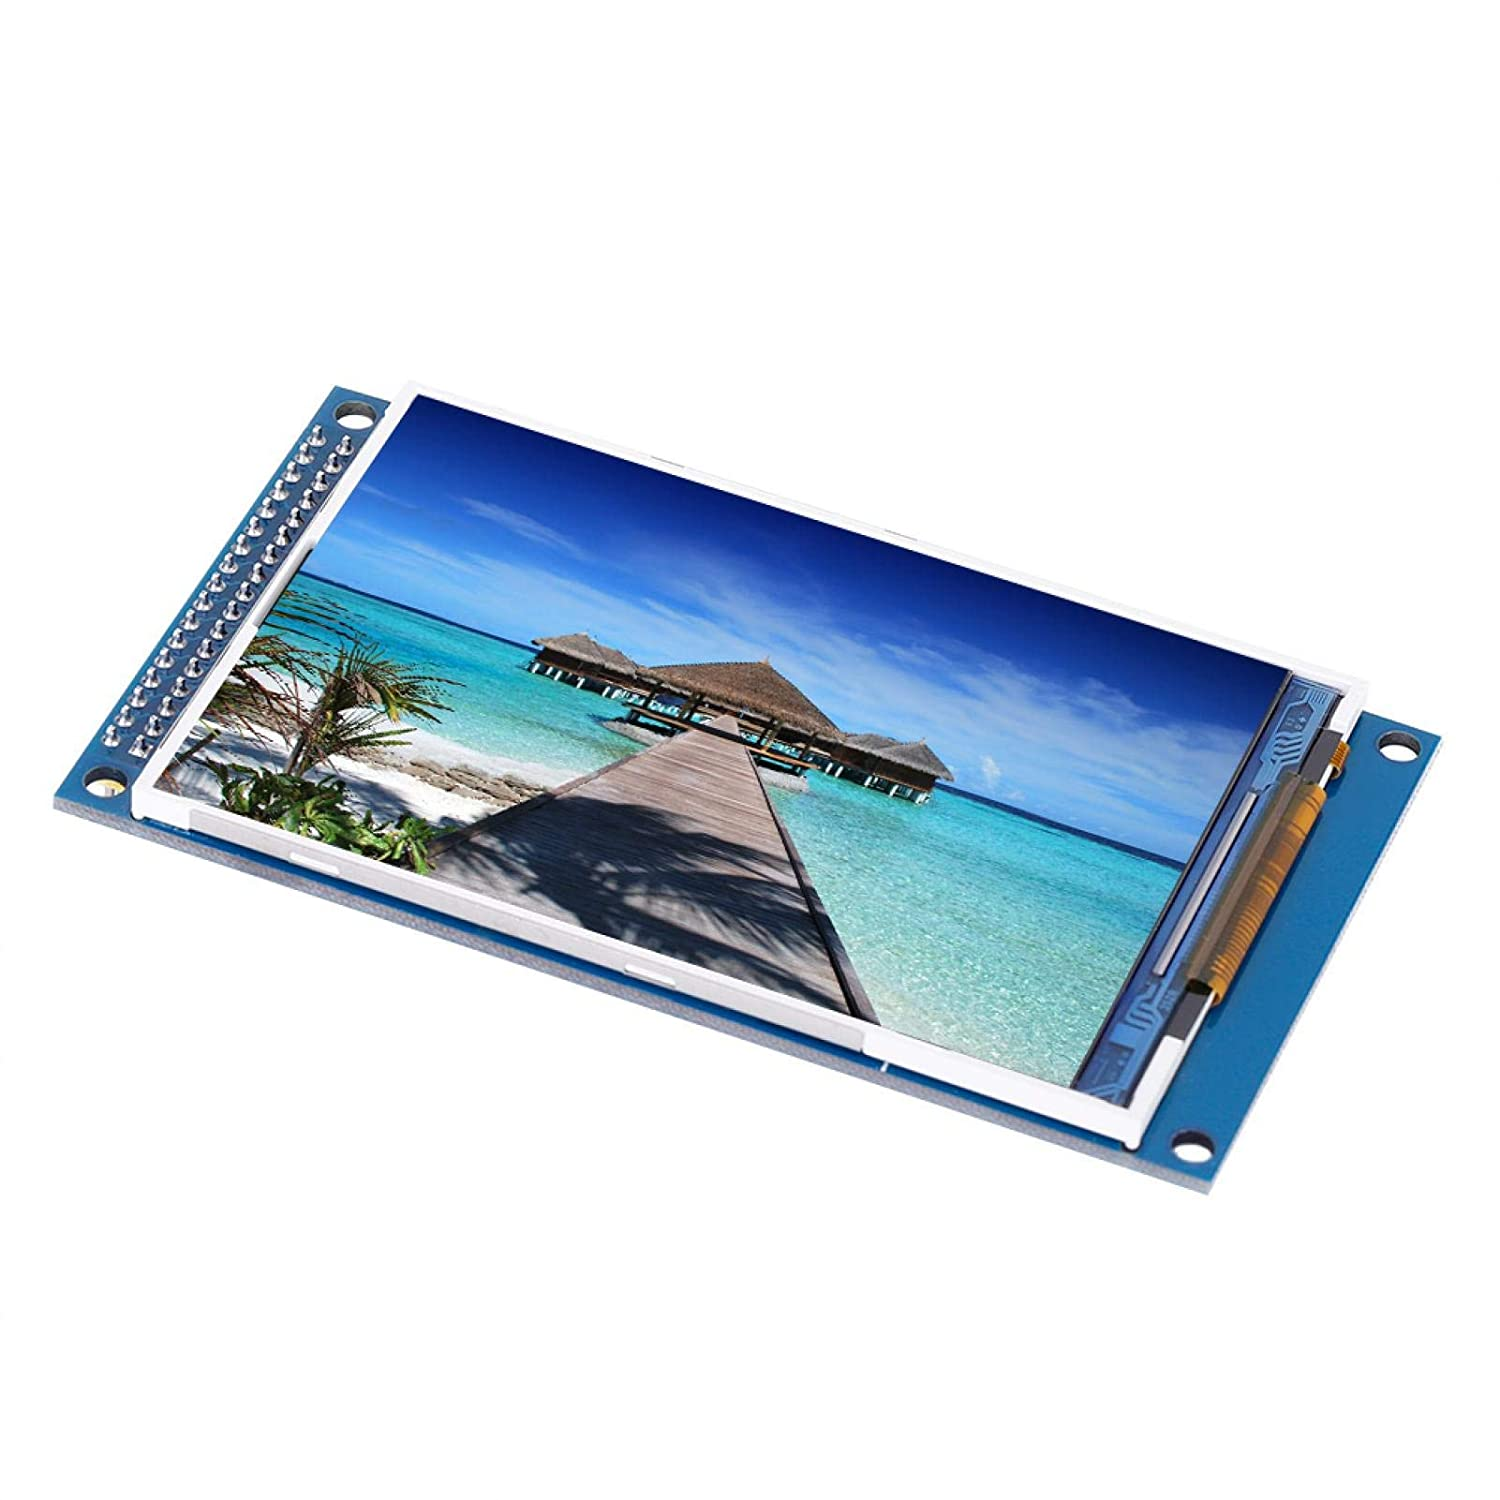 Color Screen 320 Los Angeles Mall x 480 Working 3.5 Inch Display LC Stably Module Ranking TOP18